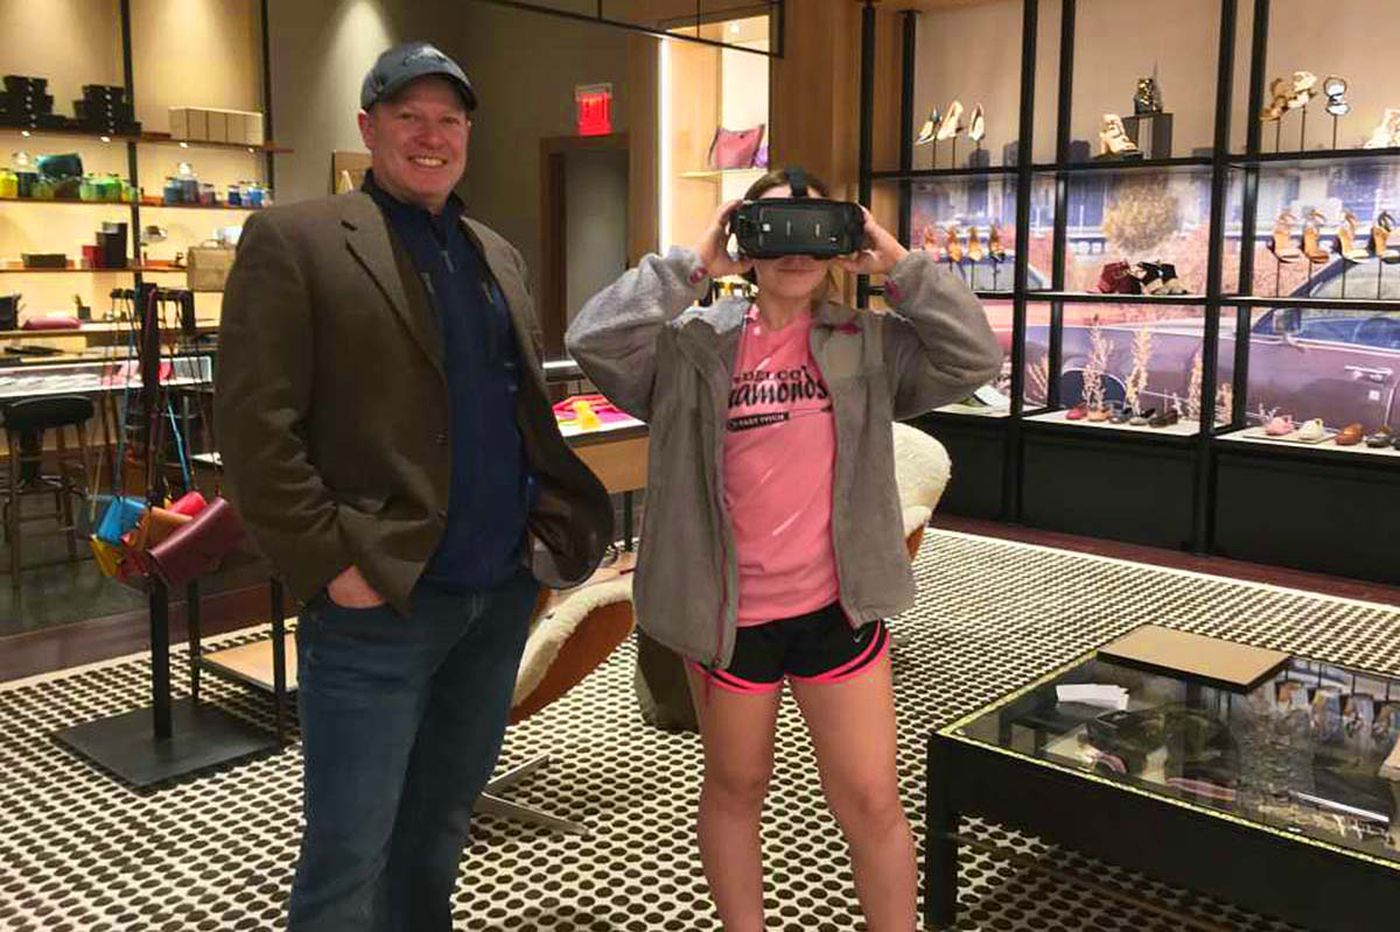 Coach at KOP Mall shows off New York Fashion Week in 3D to shoppers